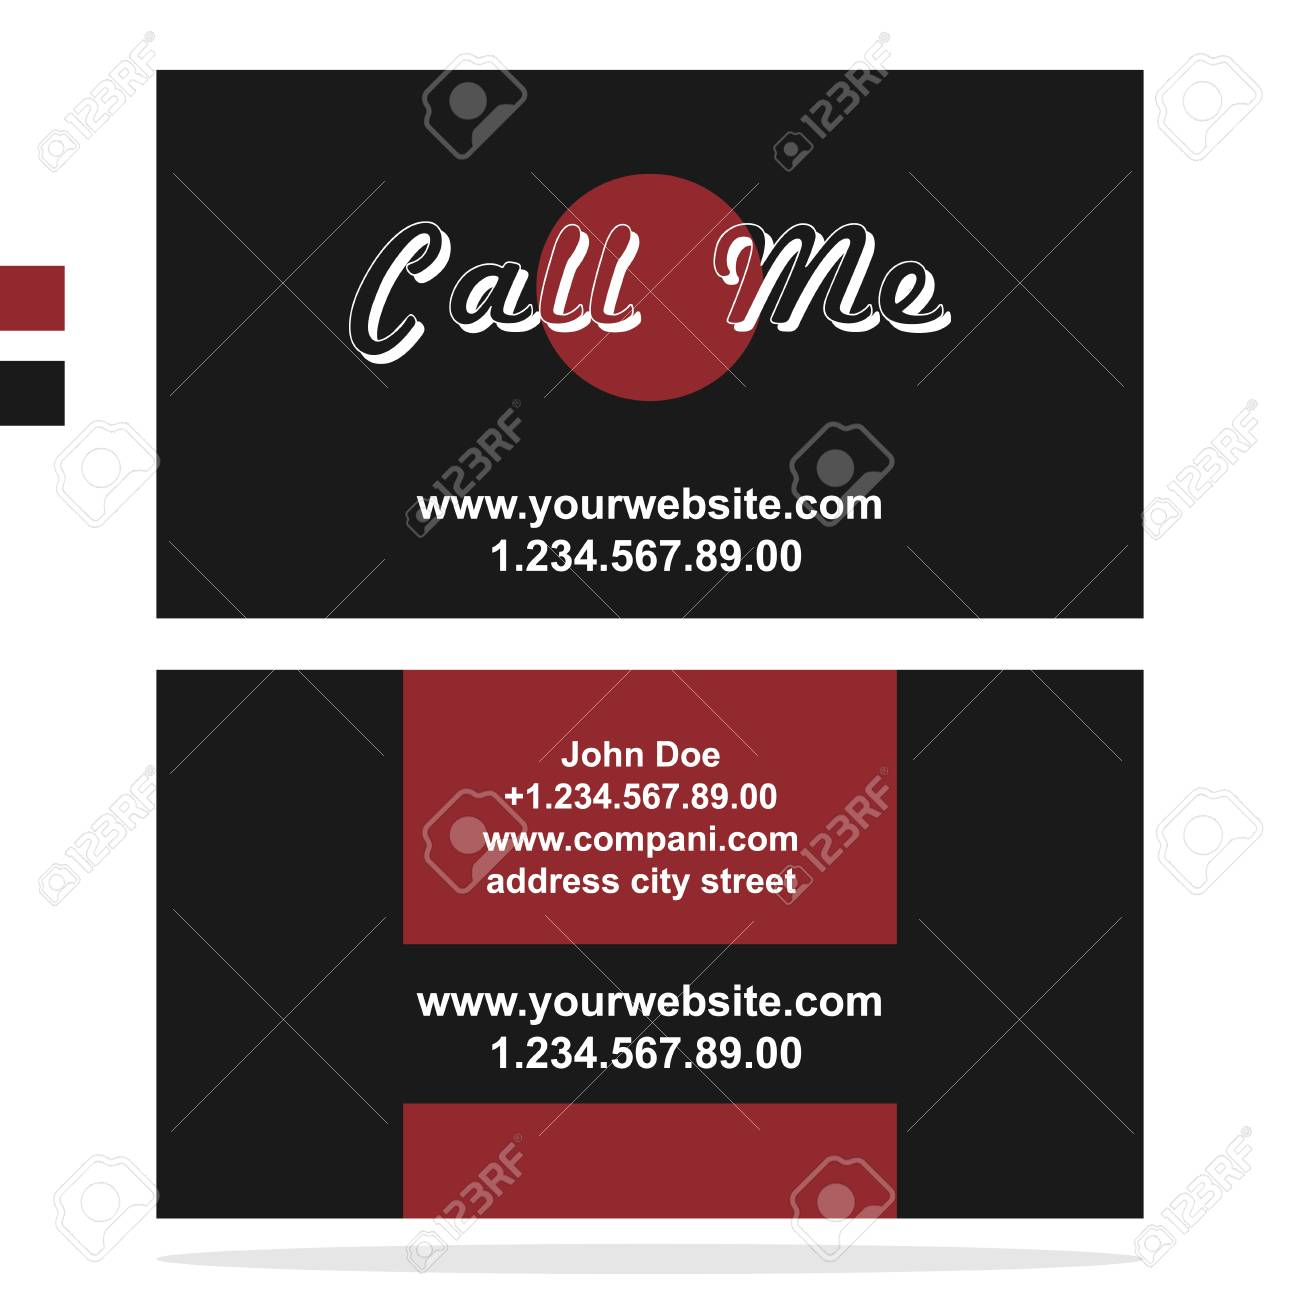 Clean business card template in dark style royalty free cliparts banco de imagens clean business card template in dark style reheart Choice Image